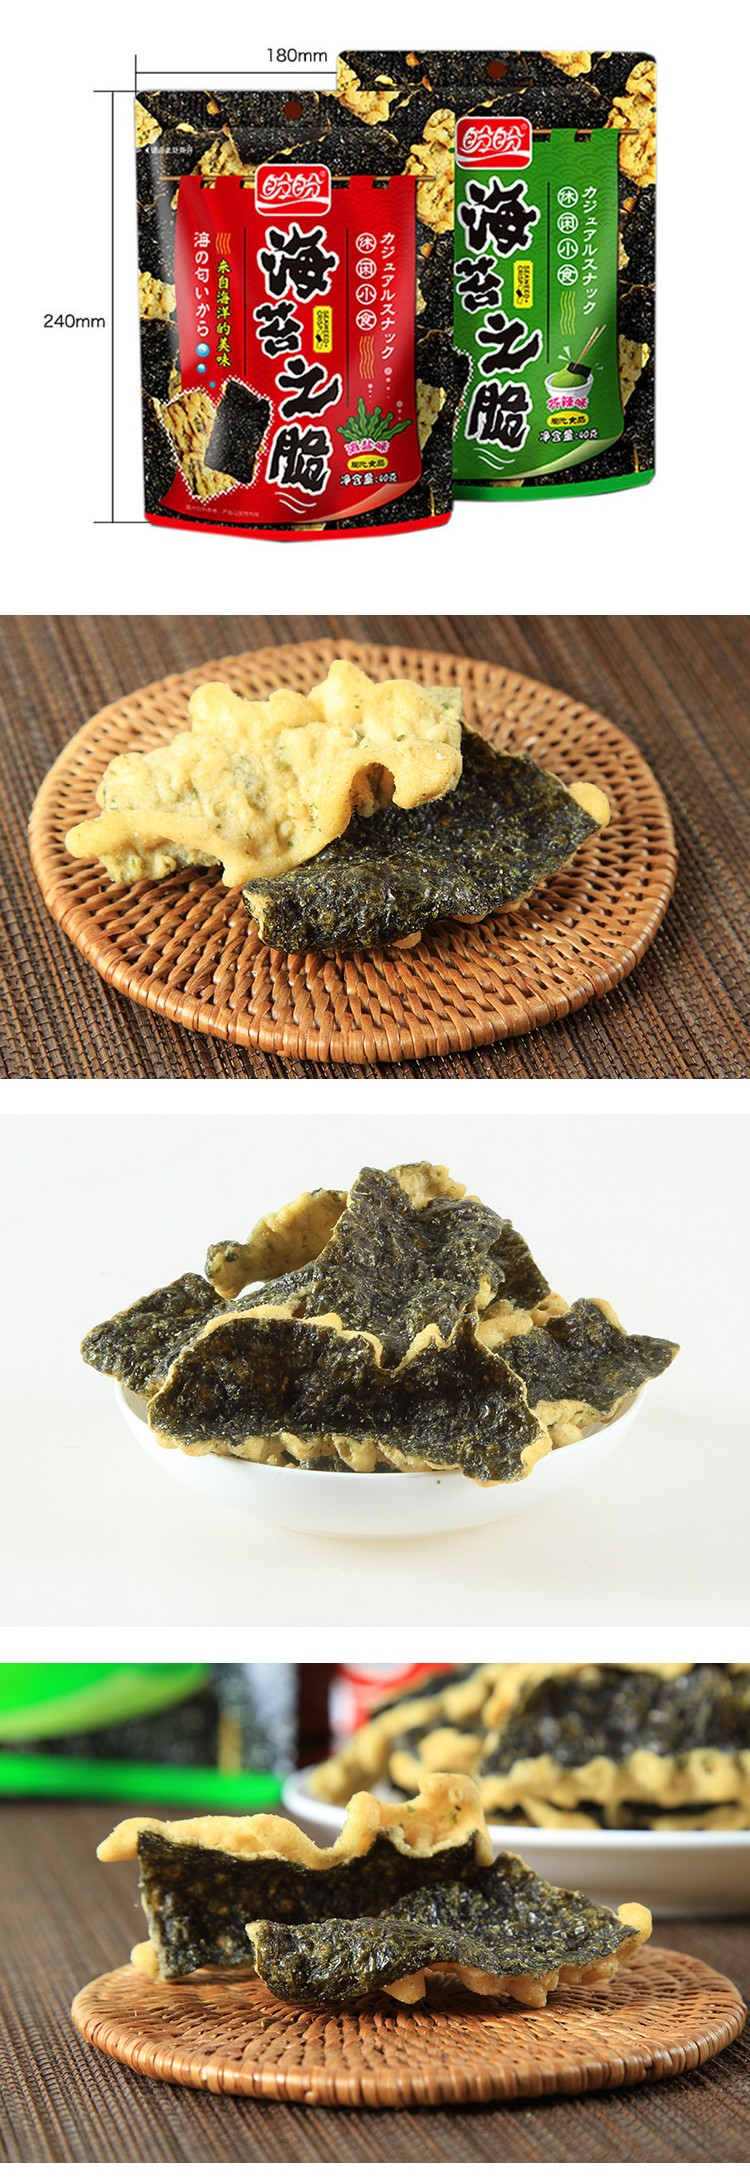 Panpan roasted seaweed top 10 food companies